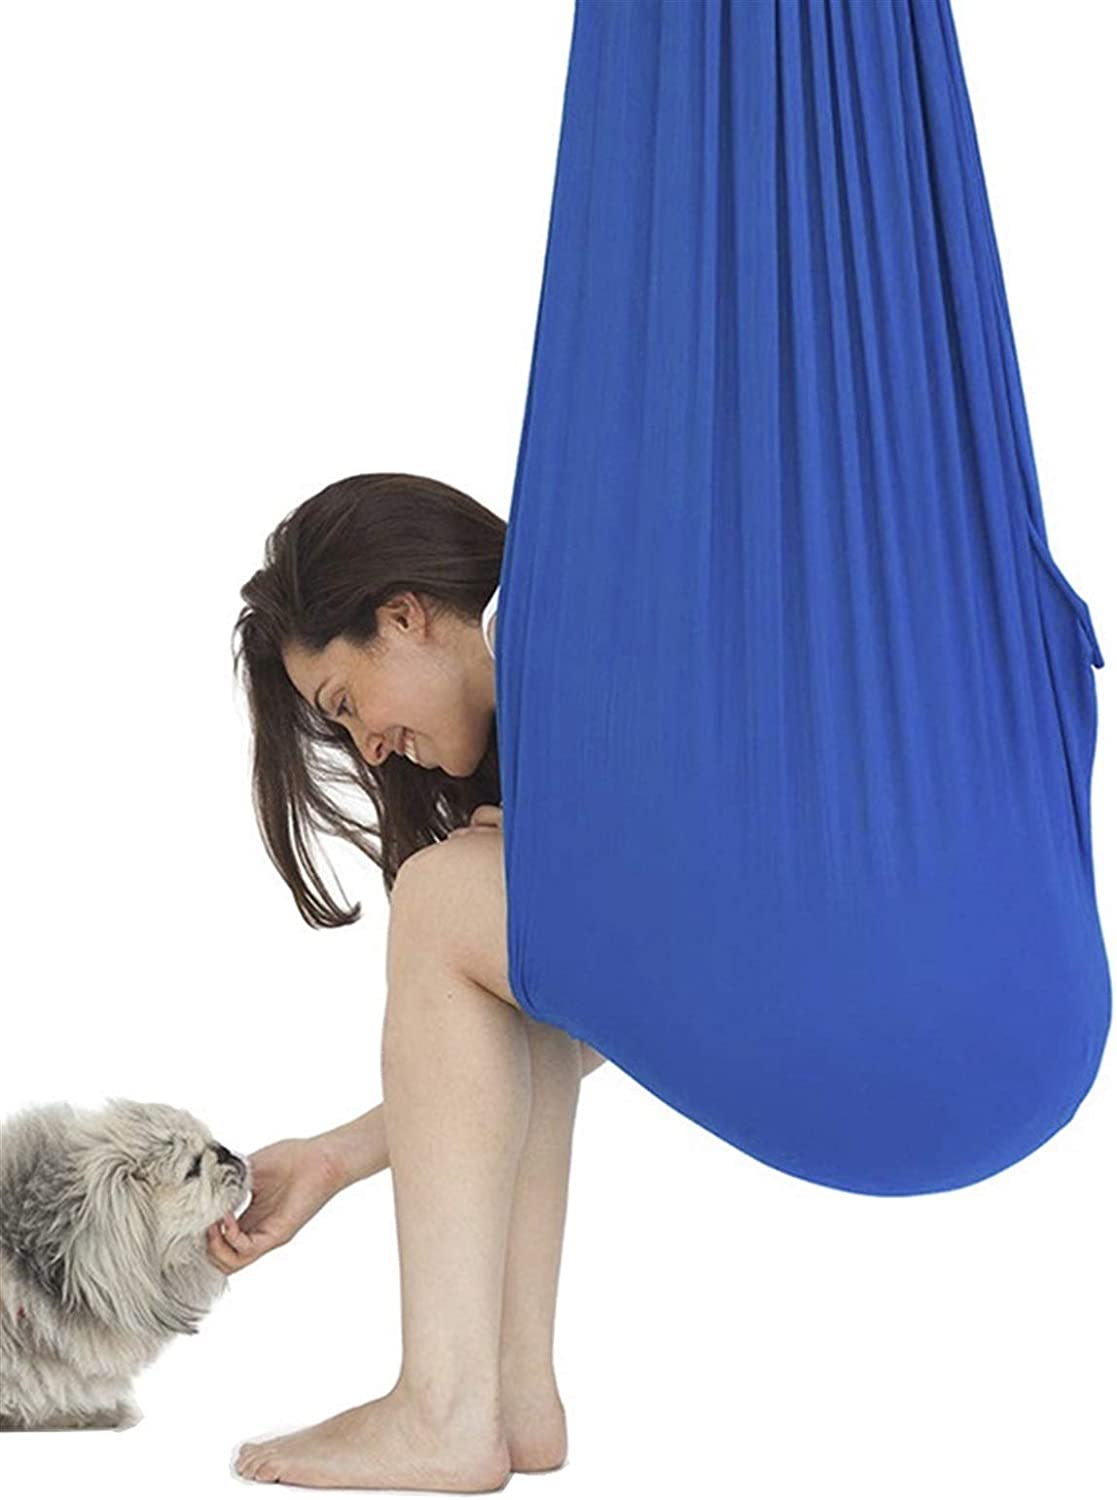 Bombing free shipping Max 63% OFF LICHUXIN Indoor Therapy Swing Snuggle for Cuddle C Hammock